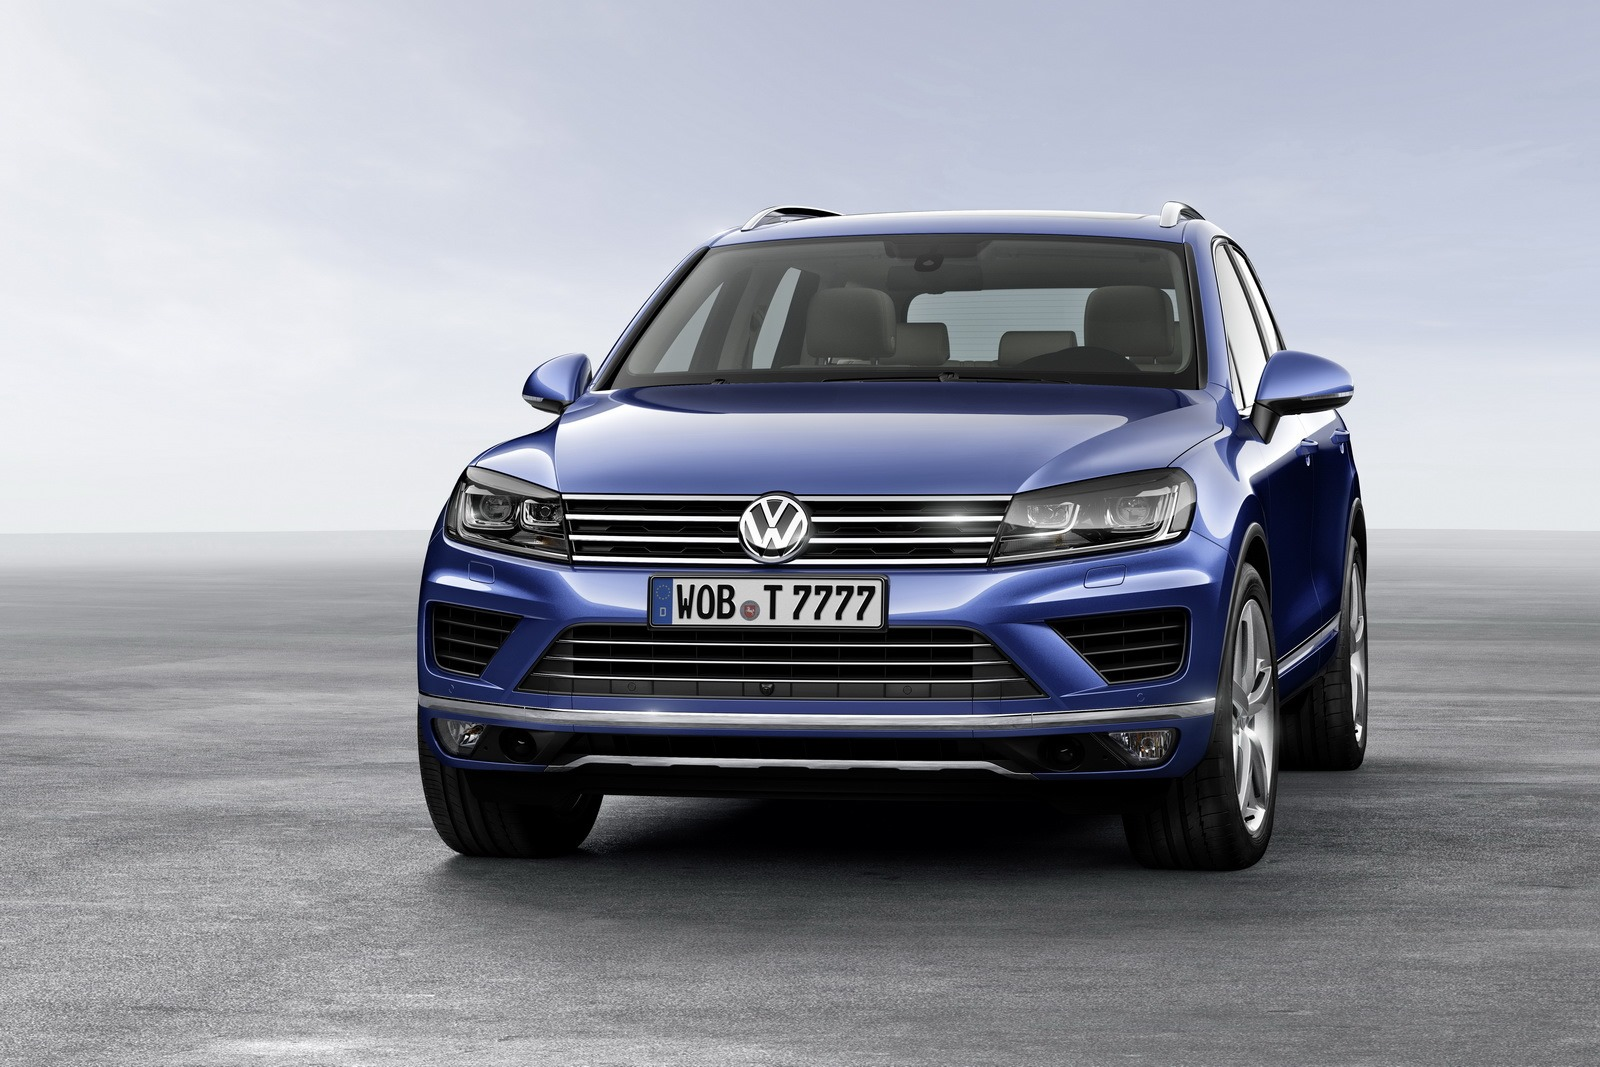 2015 volkswagen touareg facelift brings new features autoevolution